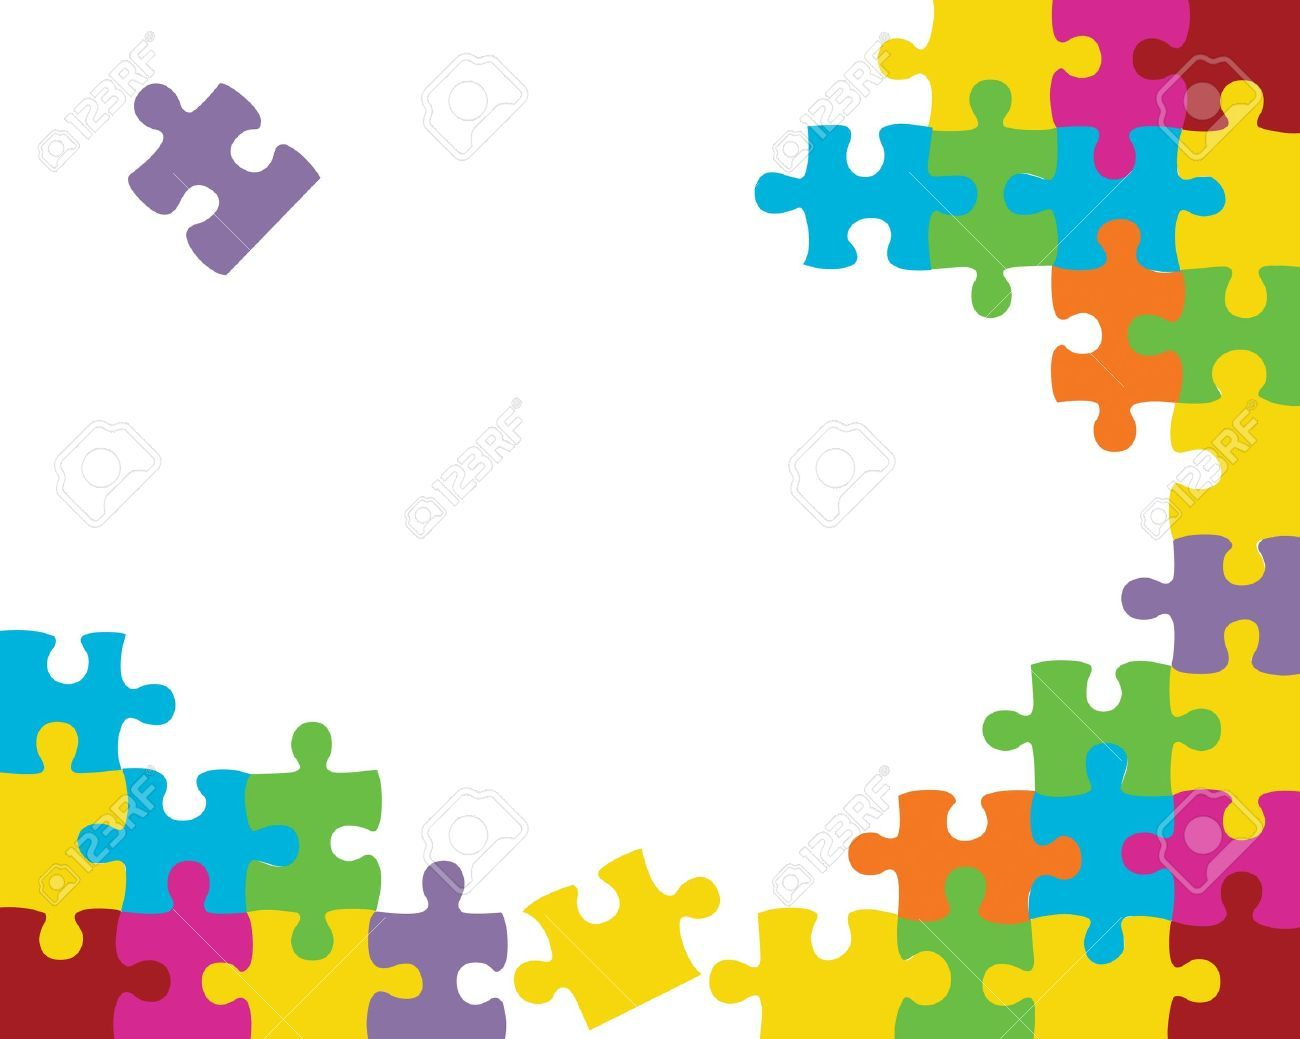 Puzzle clipart background. Stock vector periscopes illustration